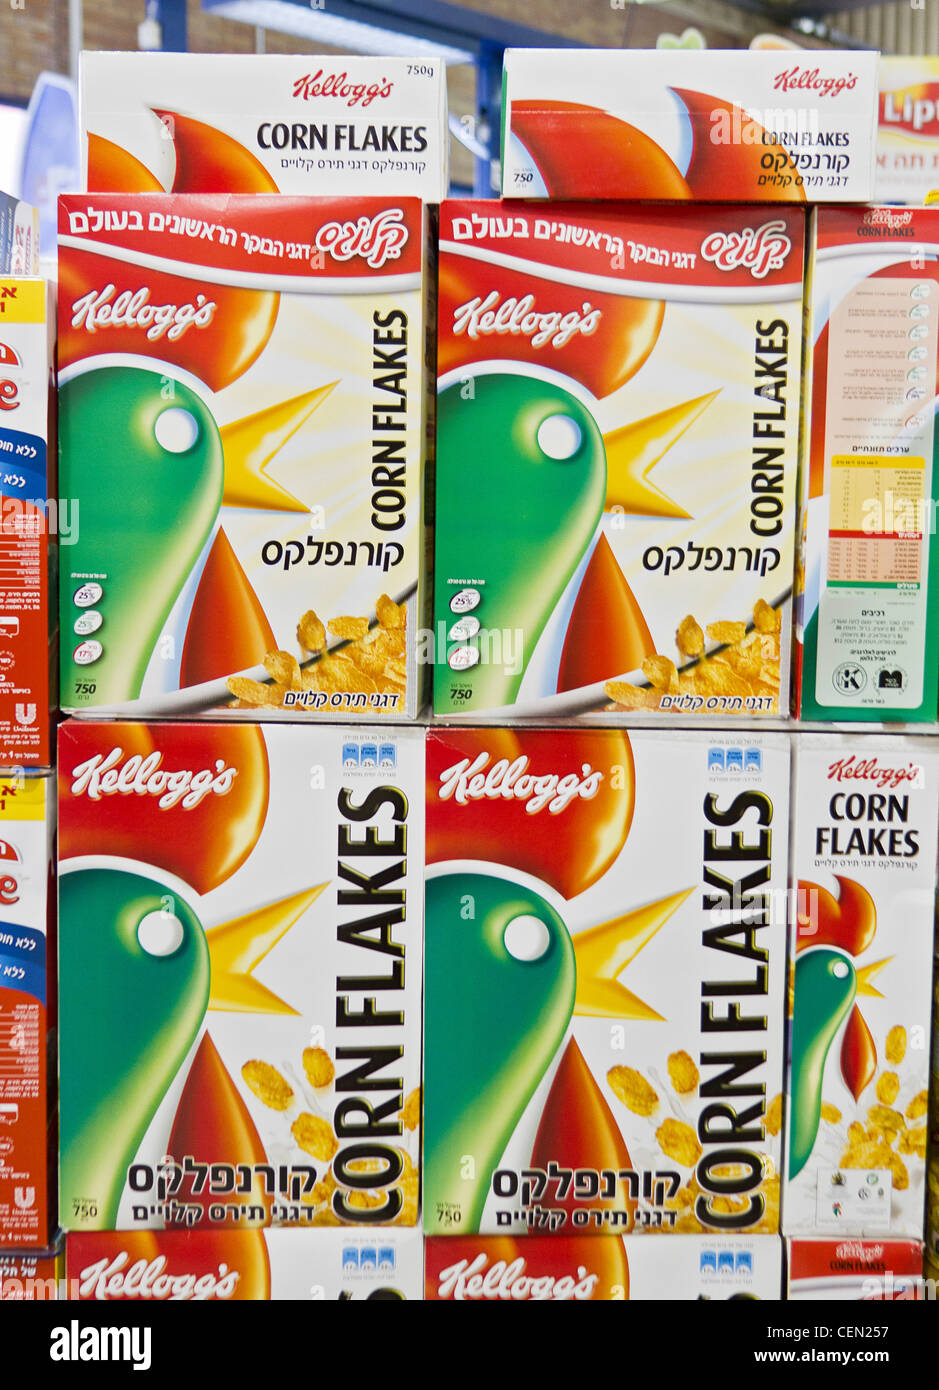 Corn flakes with Hebrew lettering in a grocery store in Israel. - Stock Image